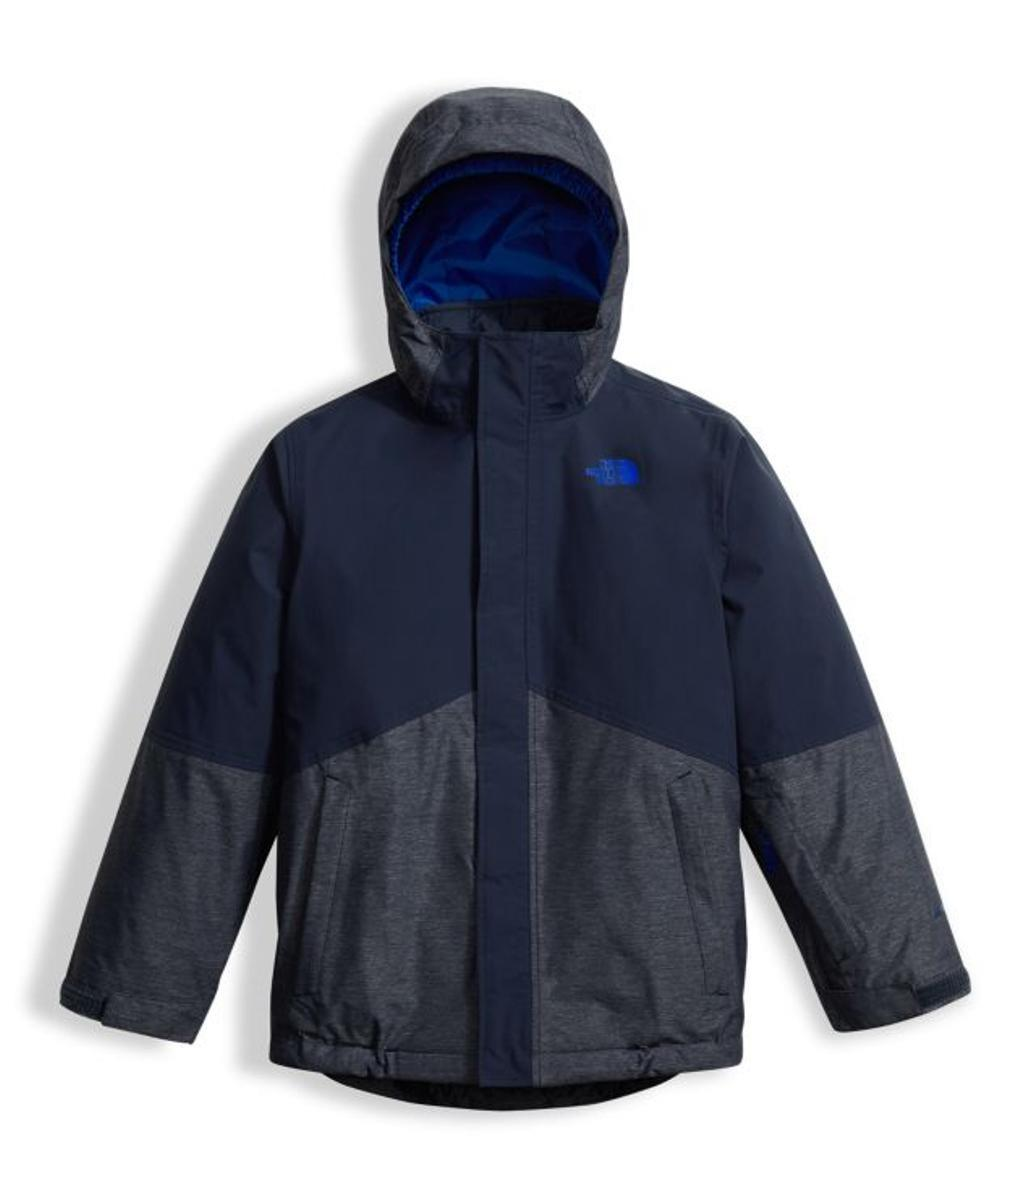 db9889d8a7a7 The North Face Boundary Triclimate Jacket Boys. Loading zoom